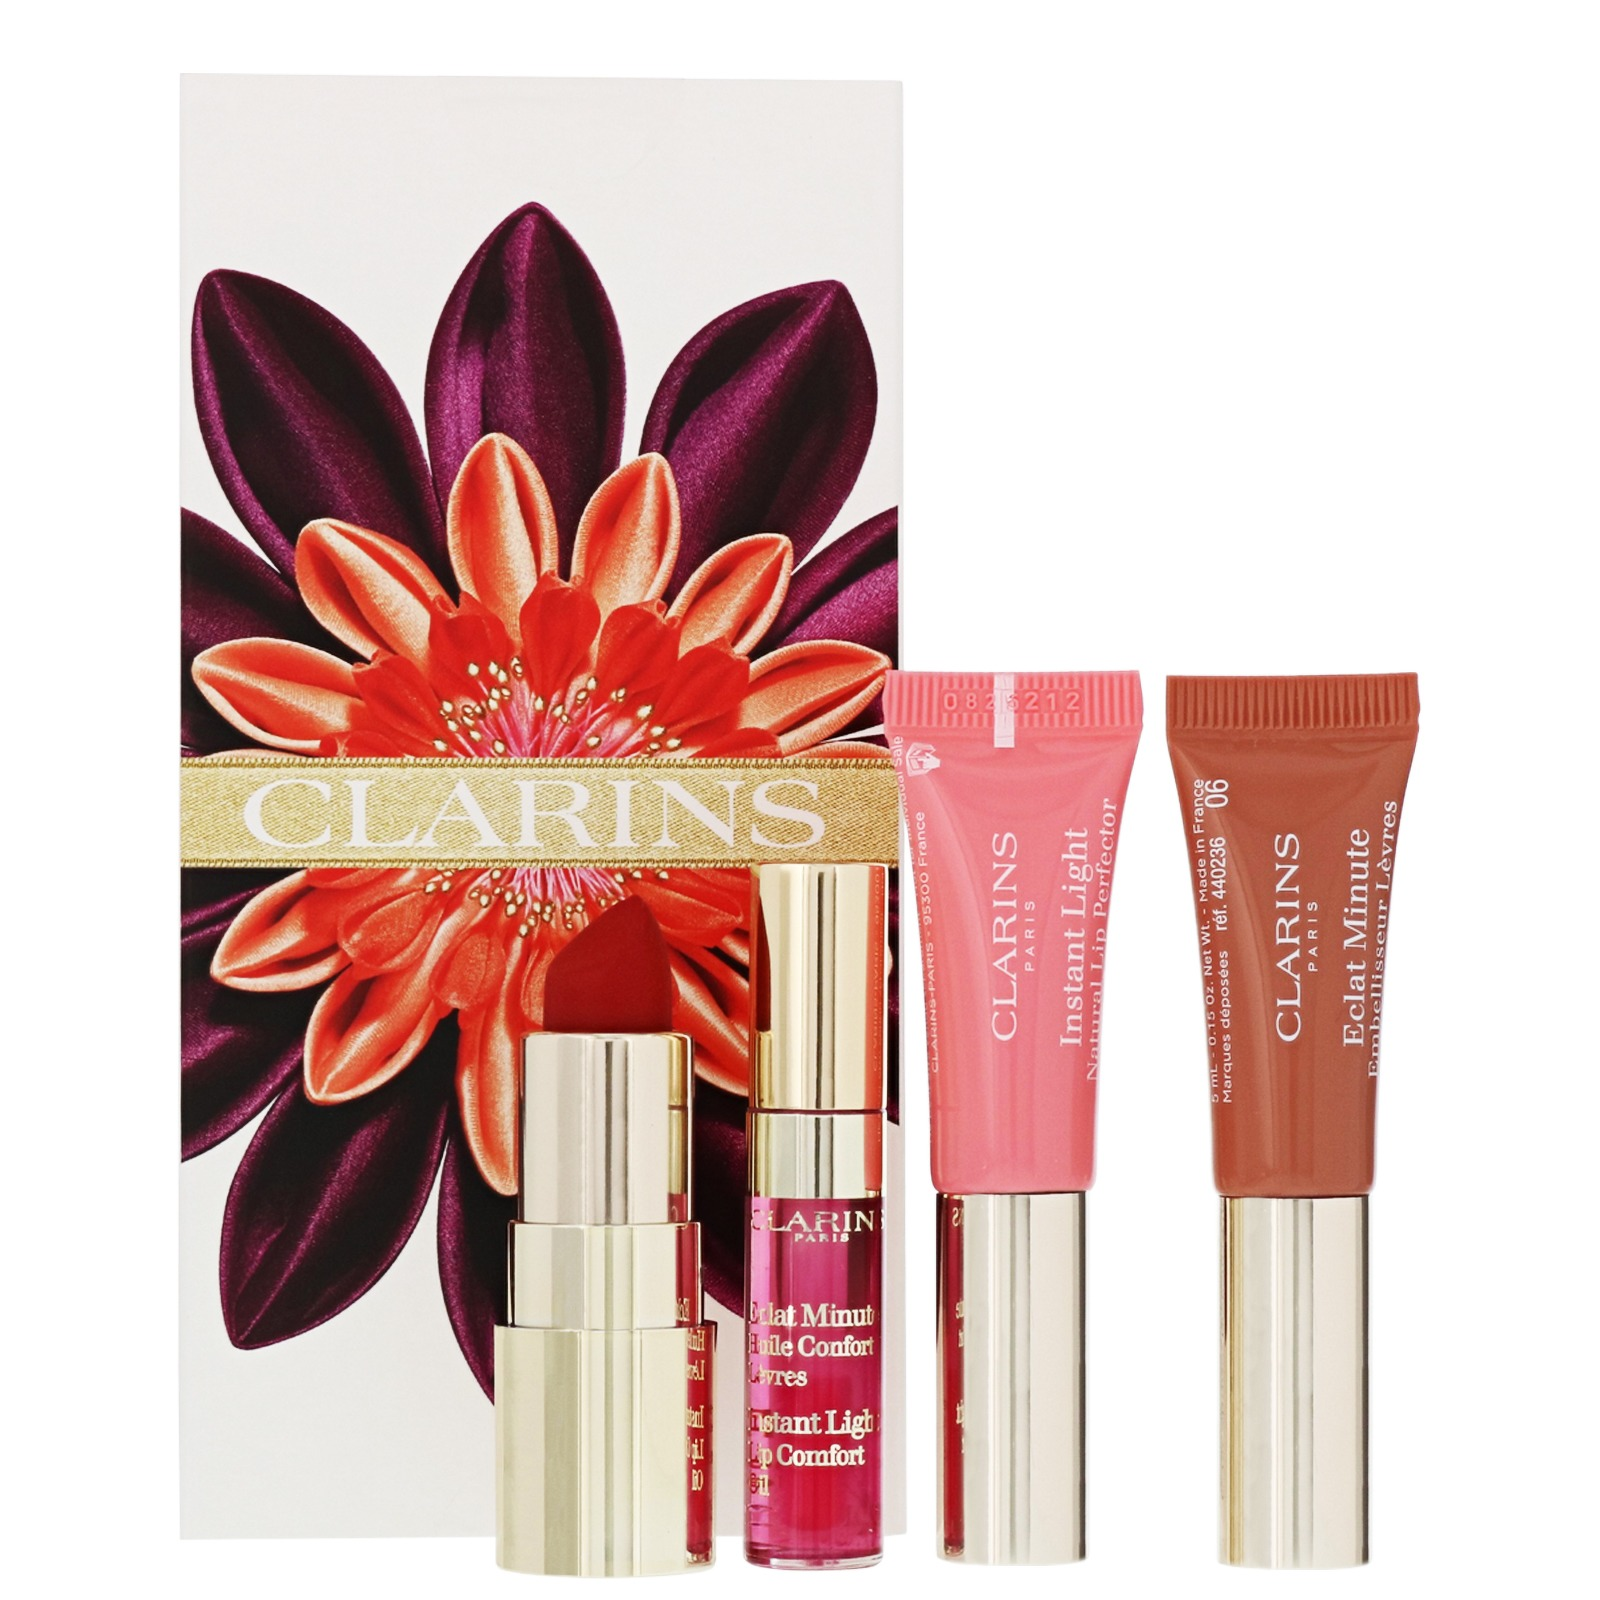 Clarins Gifts & Sets Love Your Lips Collection (Worth £32.00)